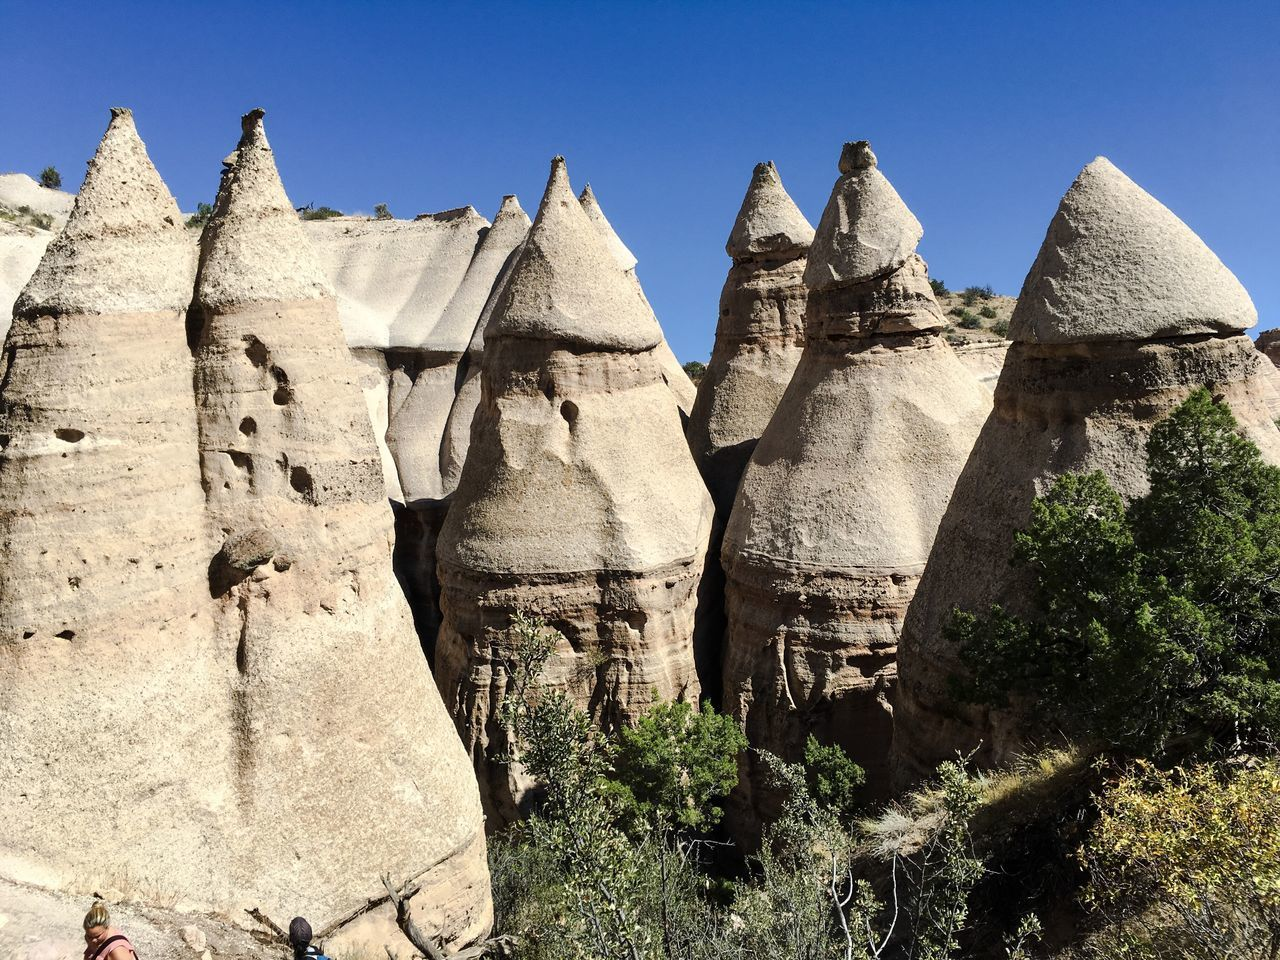 Clear Sky History Stone Material Blue The Past Ancient Day Ancient Civilization Outdoors Past TakeoverContrast Archaeology No People Green Tranquility Weathered Archeology Kasha-Katuwe Tent Rocks National Monument USA Tourism Sandstone Beauty In Nature Nature Physical Geography Miles Away